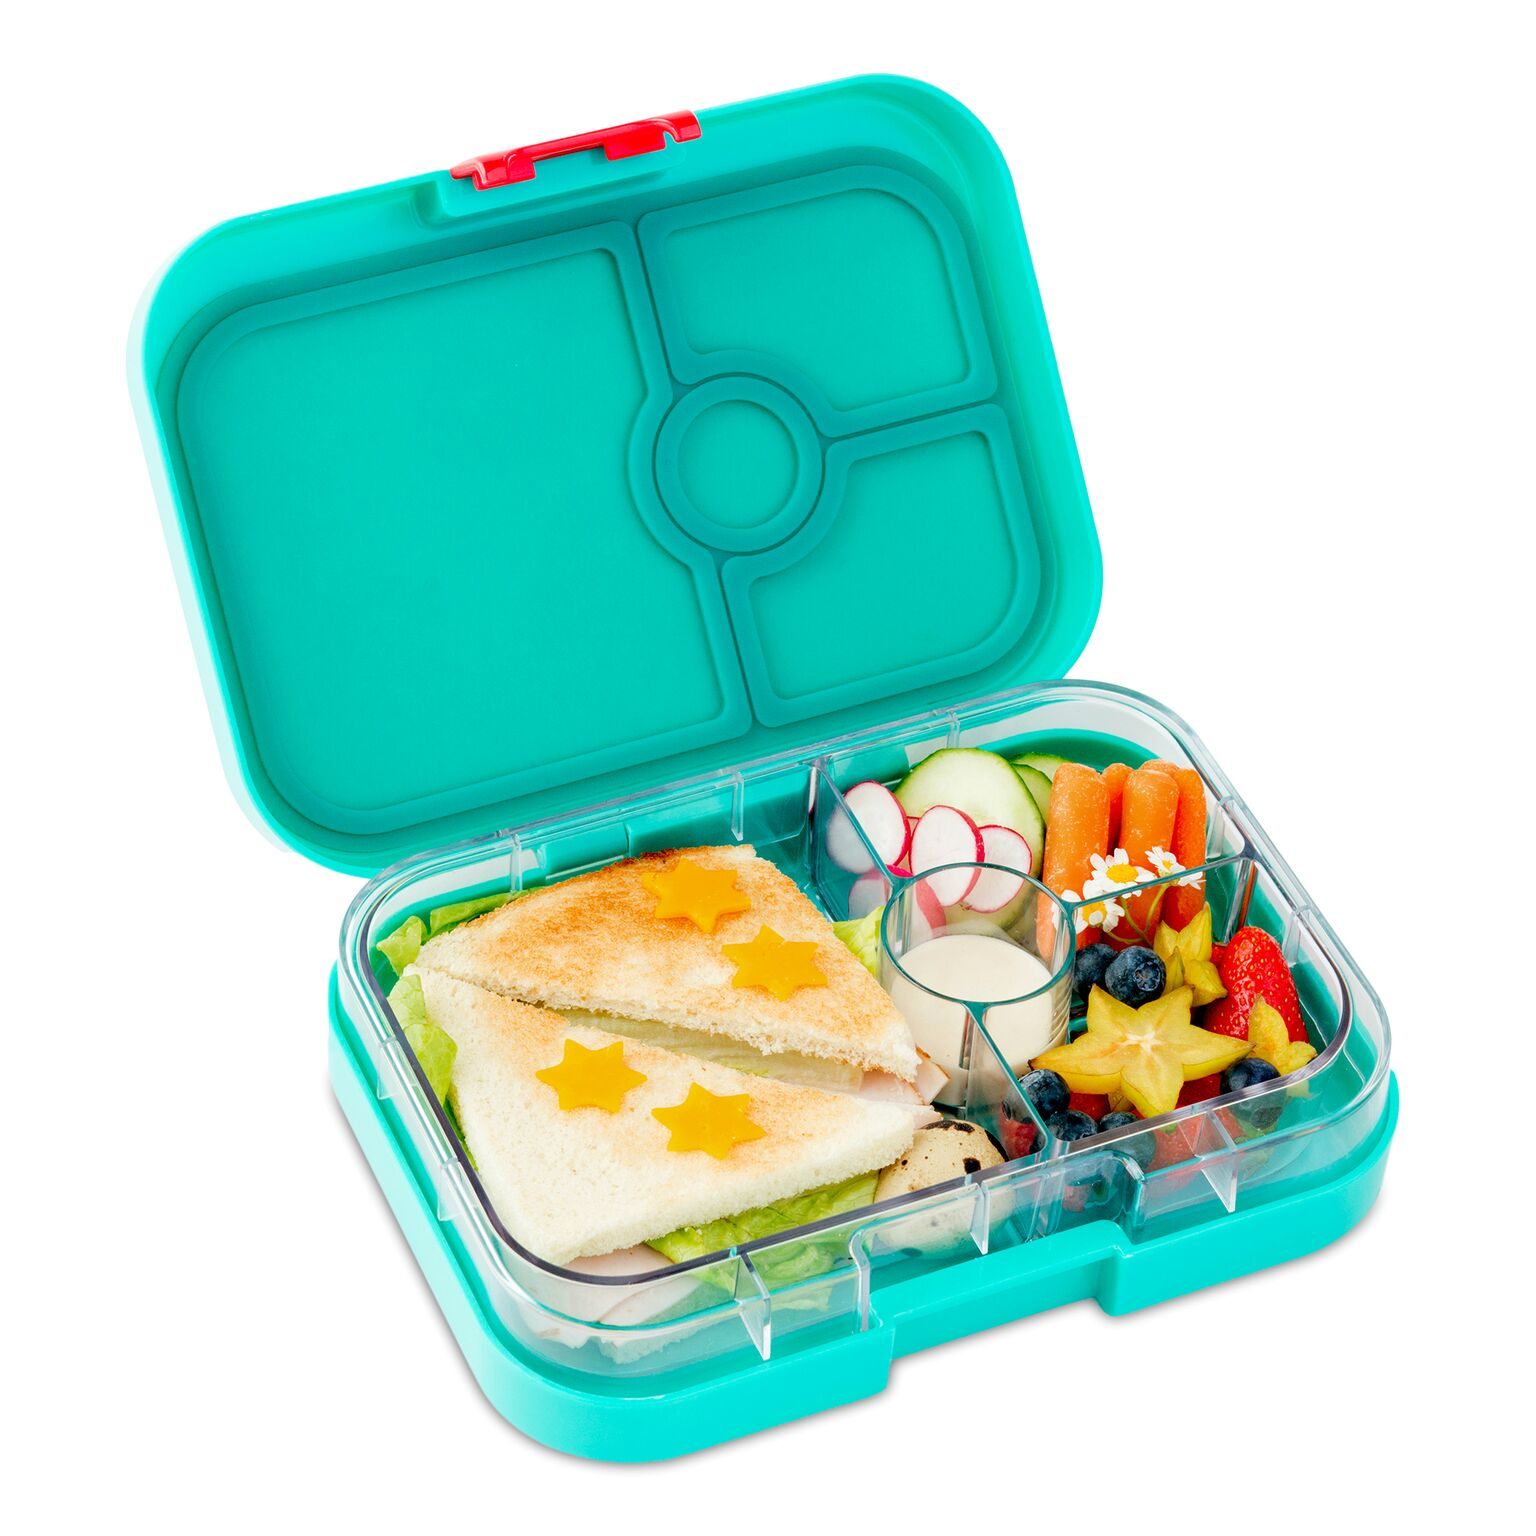 yumbox panino lunch box aqua turquoise baby vegas brisbane. Black Bedroom Furniture Sets. Home Design Ideas